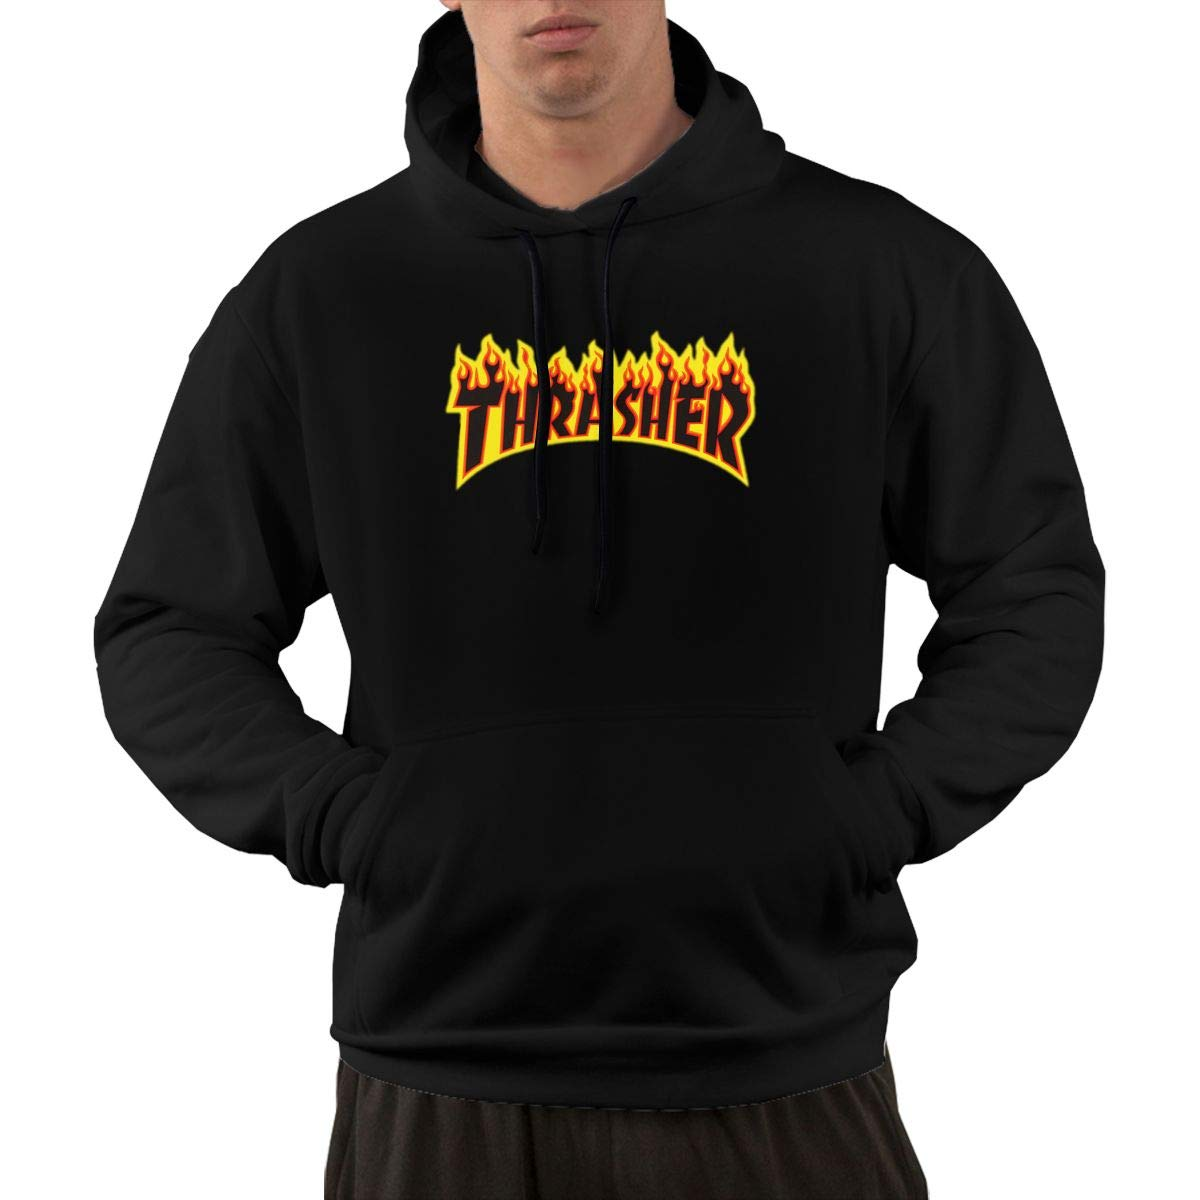 Thrasher Magazine Men's Lone Sleeve Hoodies Sweatshirt Fashion Graphic Pullover With Pocket Little Petman